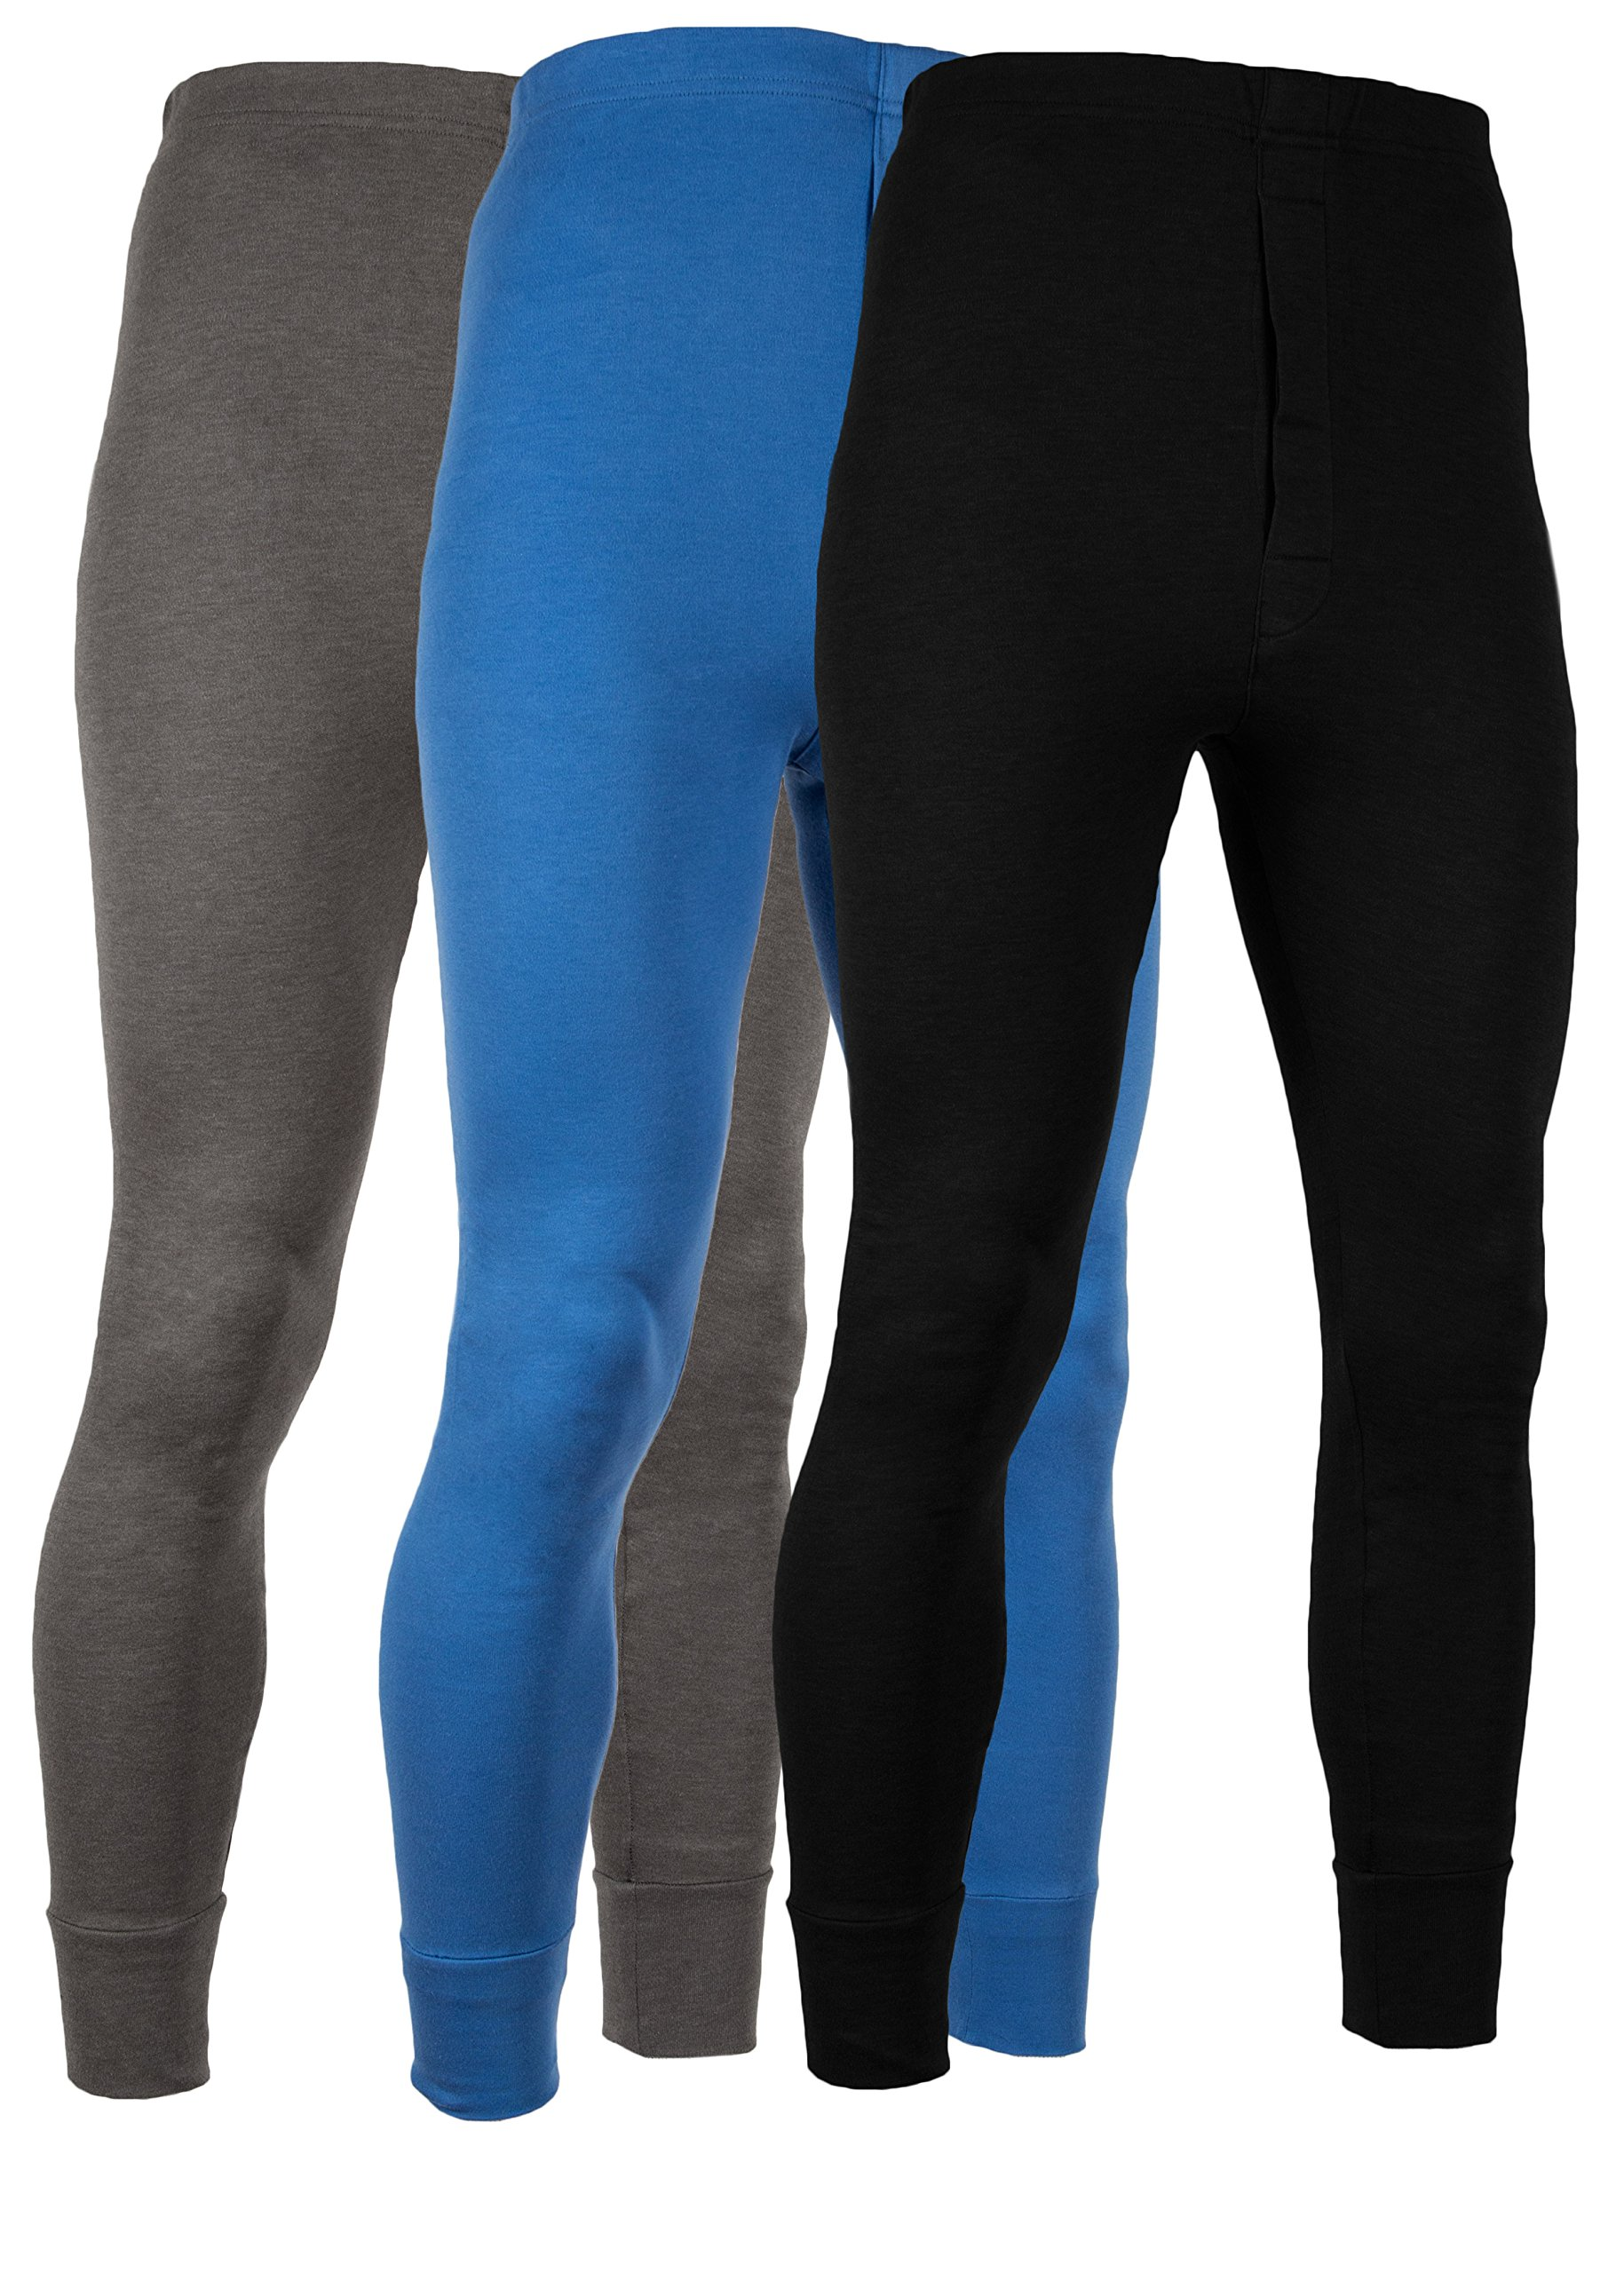 American Active Men's Long Johns Thermal Base Layer Pants 100% Cotton Fleece Lined Underwear -Pack Of 3 (3 Pack - Denim/Charcoal/Black, X-Large)